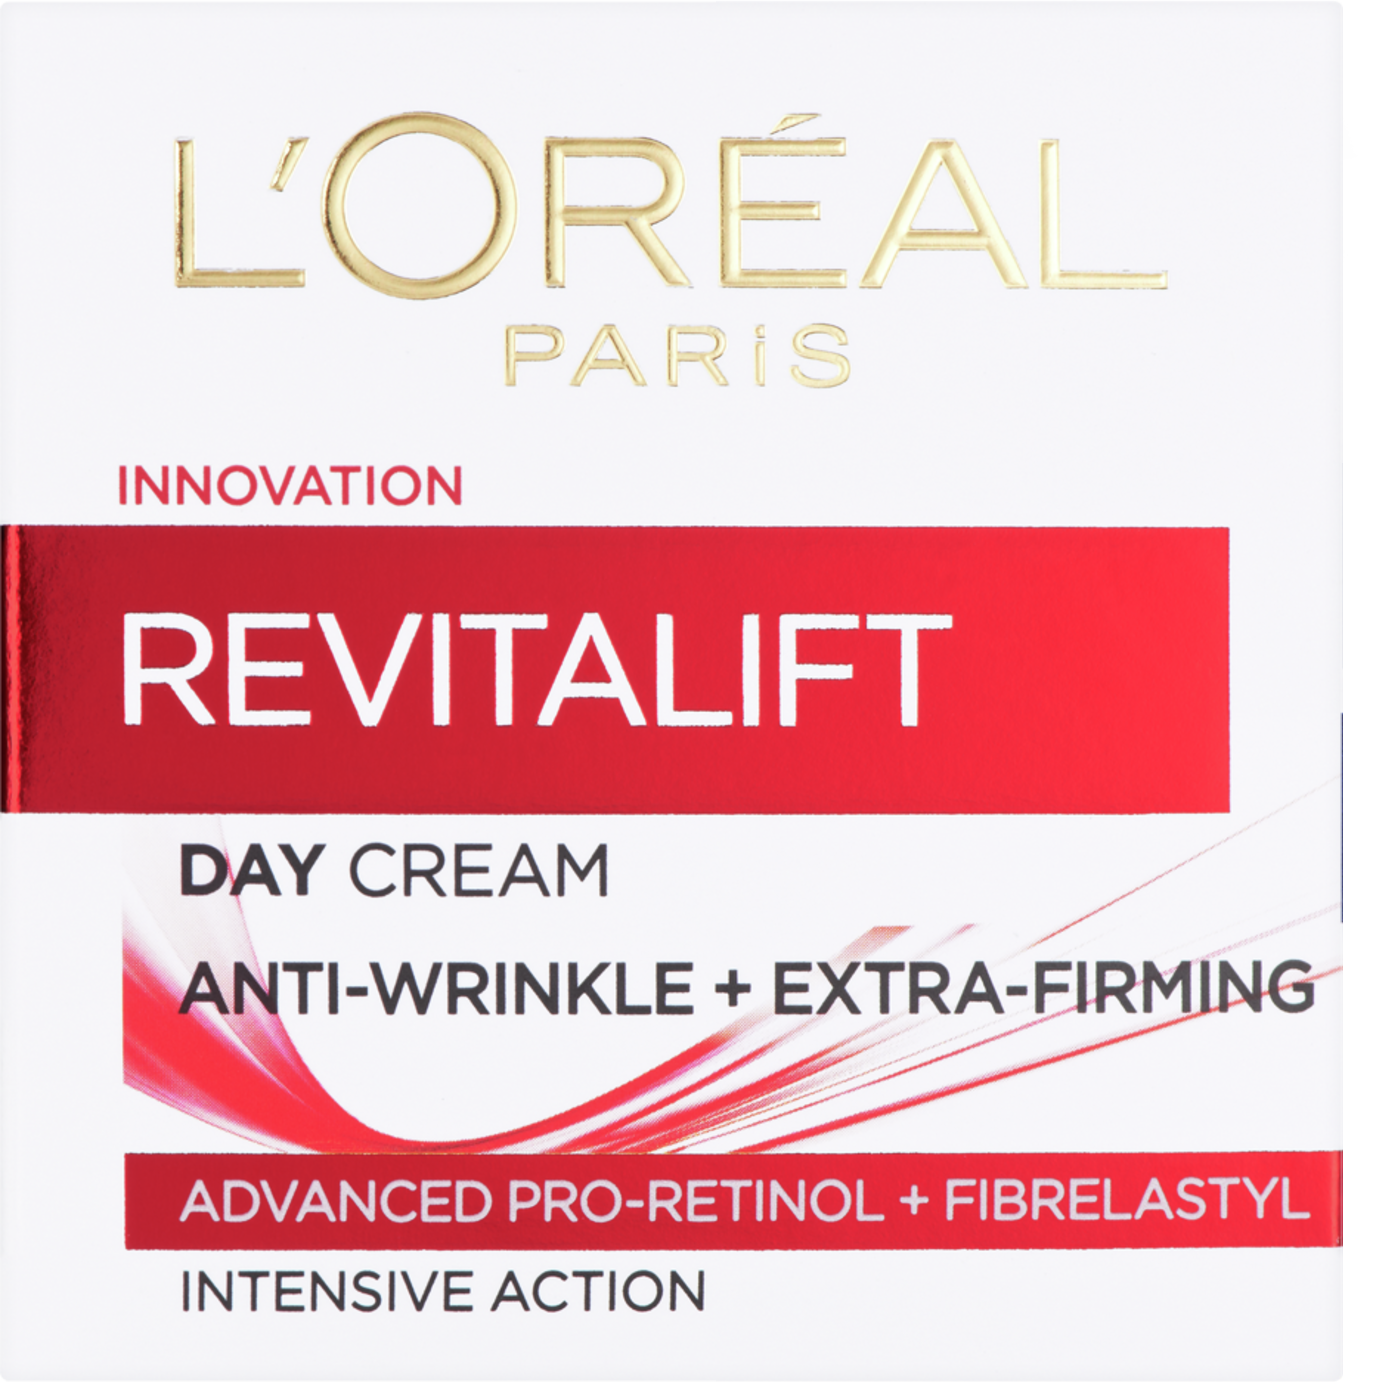 L'Oreal Revitalift Anti-Wrinkle and Firming Cream